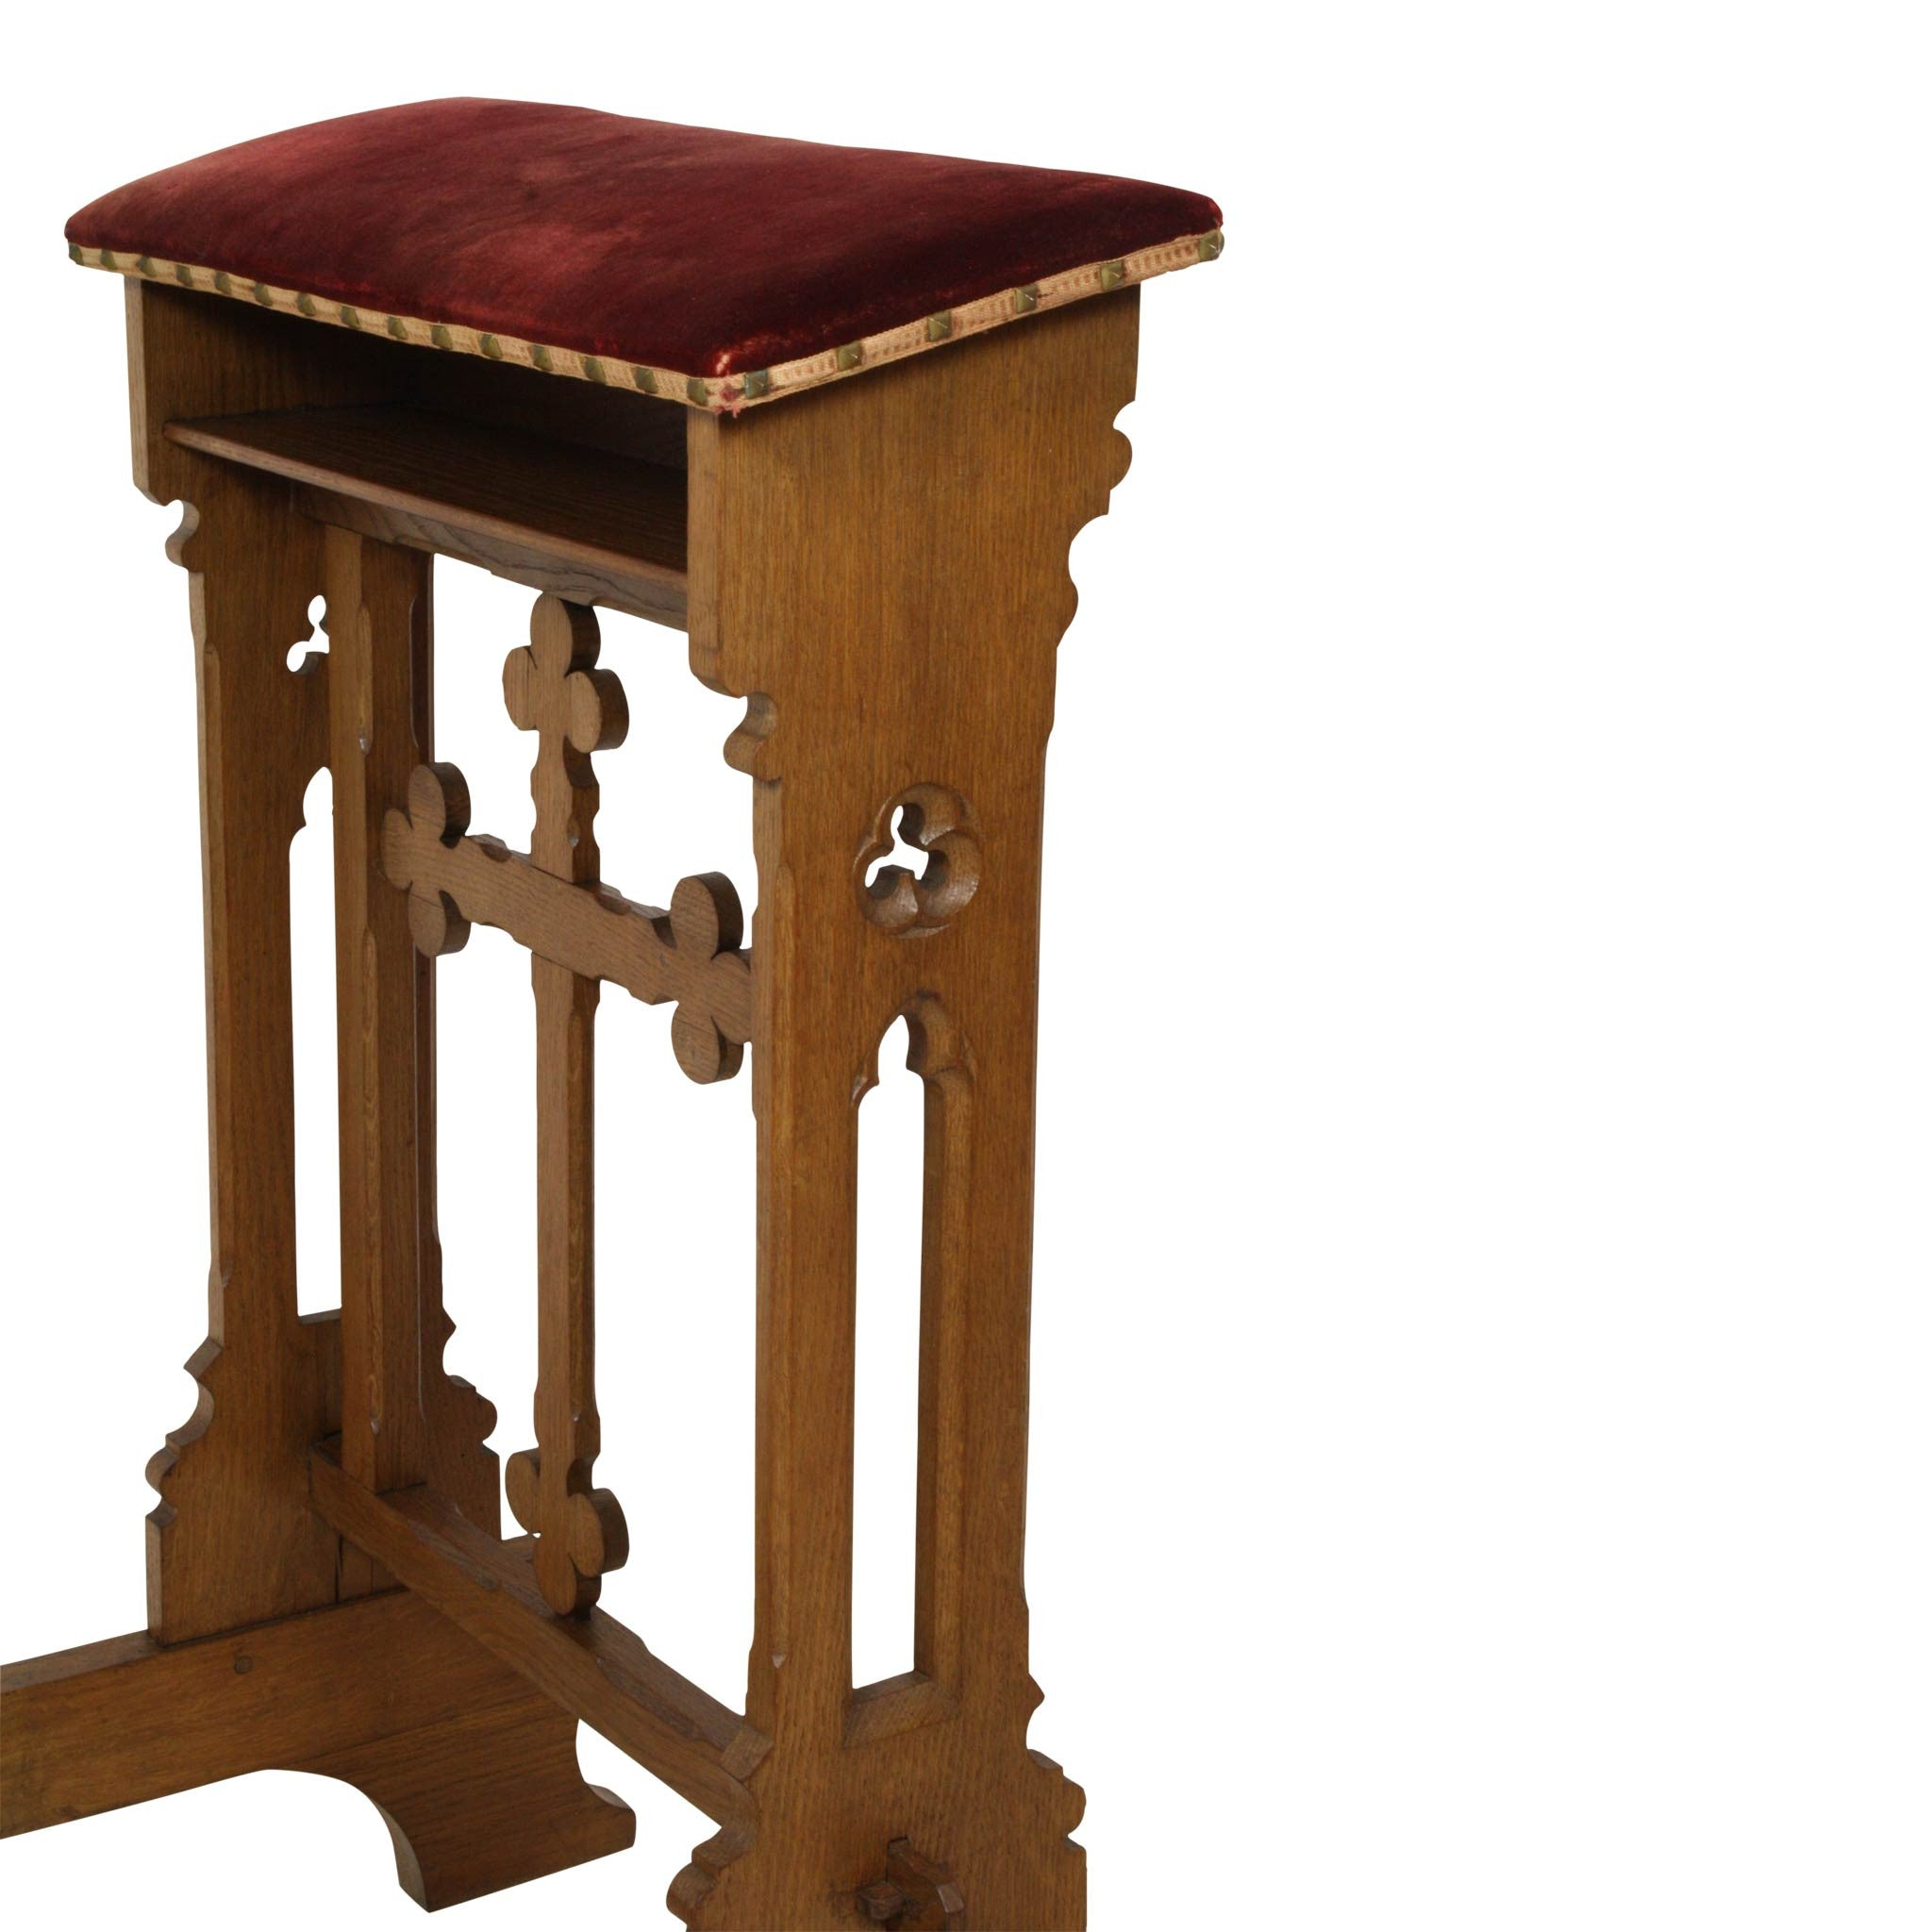 European Catholic Church Kneeler